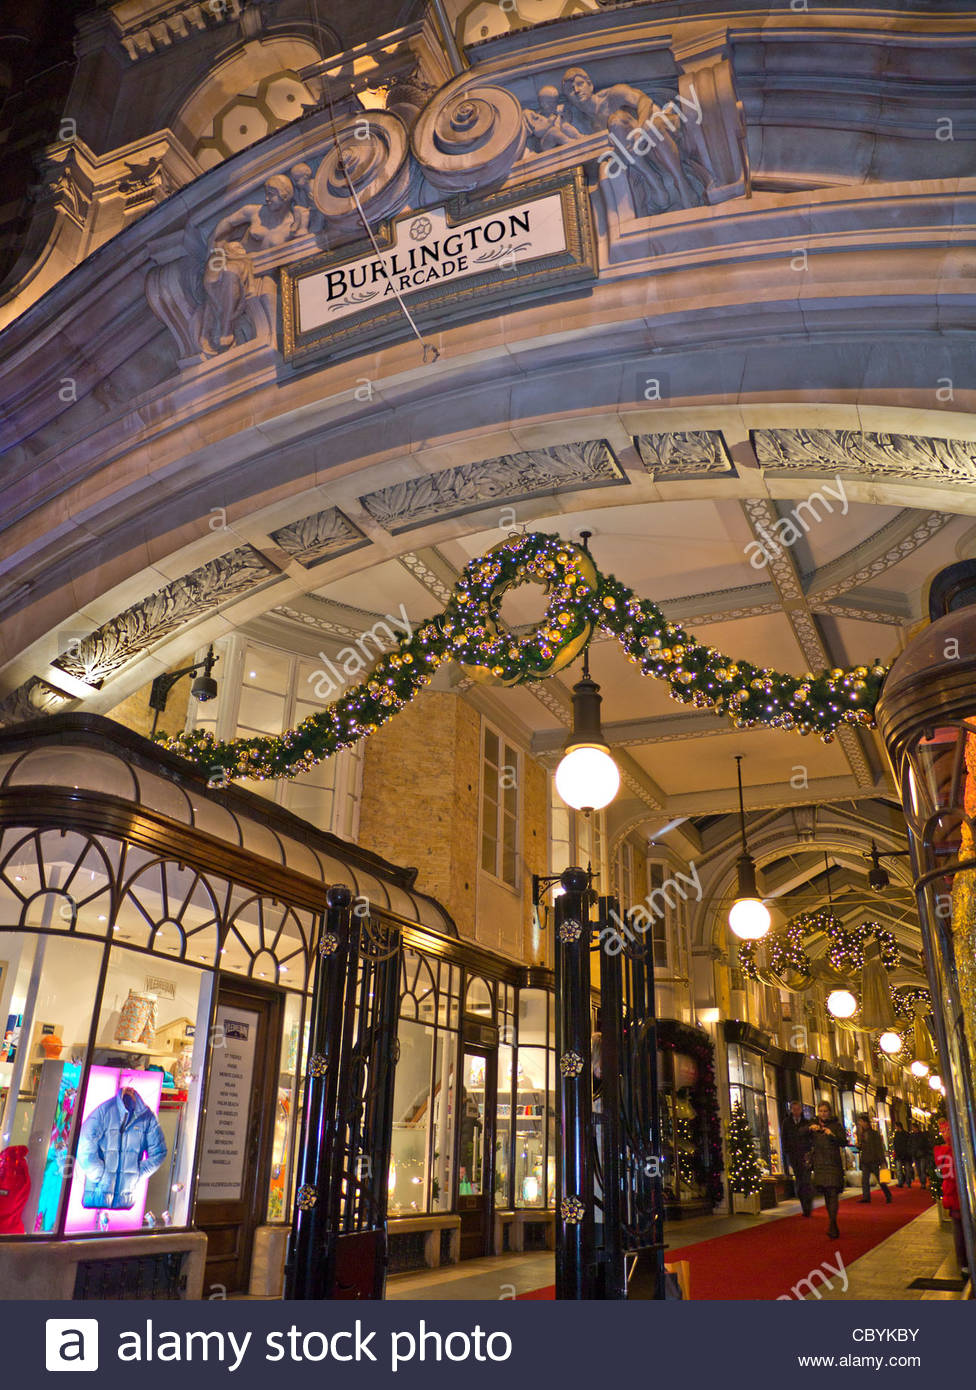 Burlington traditional luxury London shopping arcade entrance in Piccadilly with Christmas lights and decorations - Stock Image